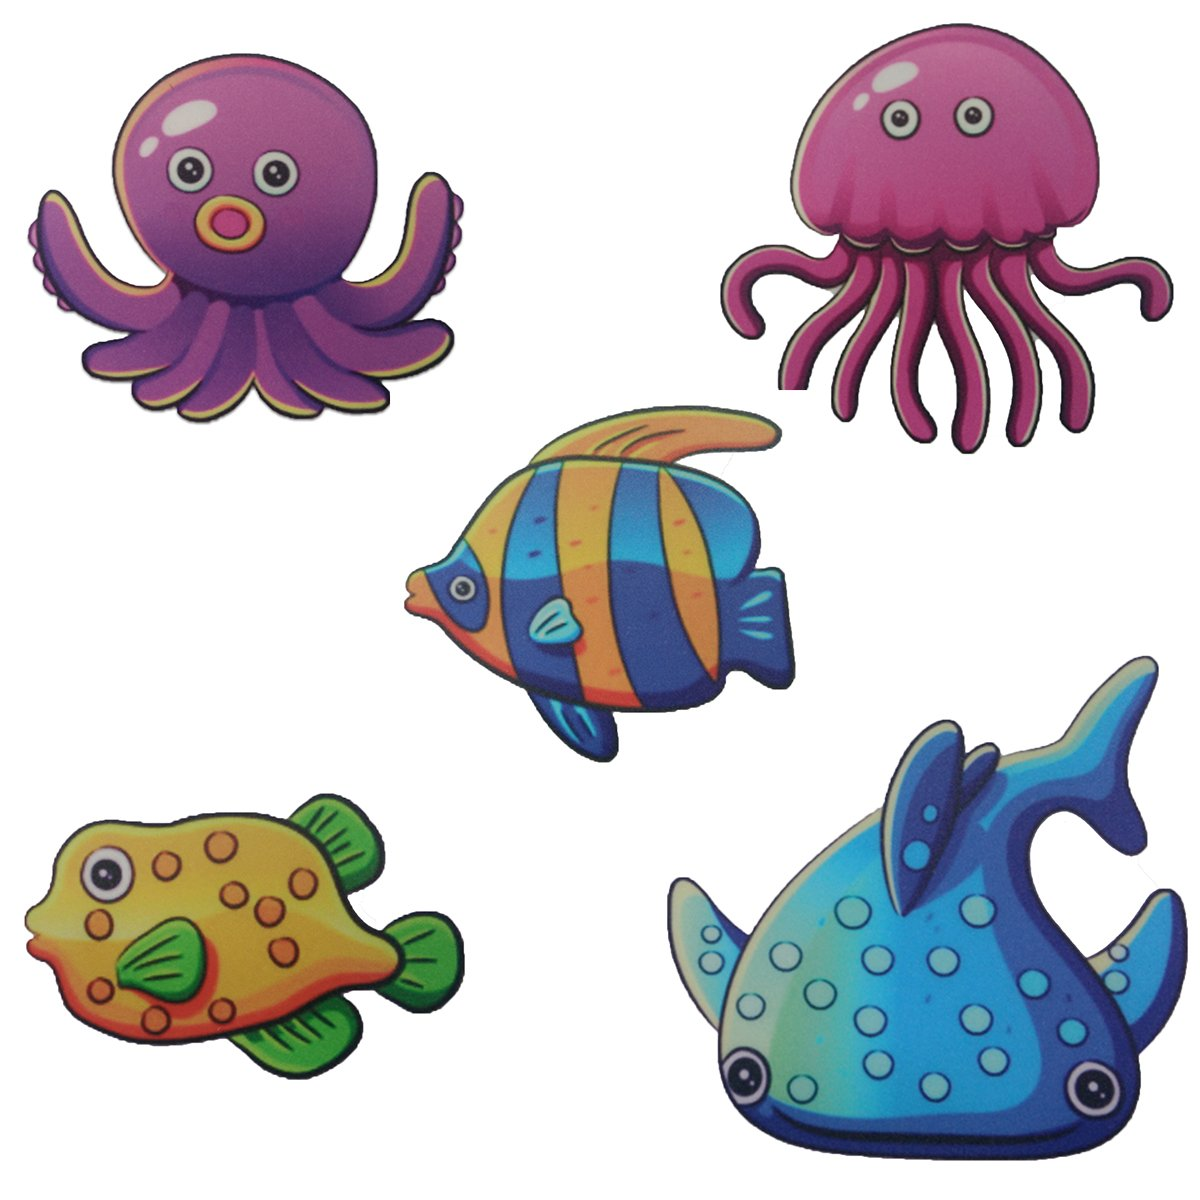 Bathtub Stickers Non Slip Baby | Safety 3d Anti Slippery Decor Appliques- for Shower Adhesive Ocean Animals Colorful Tub Tattoo Buddy Threads/Smooth Tile Bathroom Surface Stickers 20 Pack